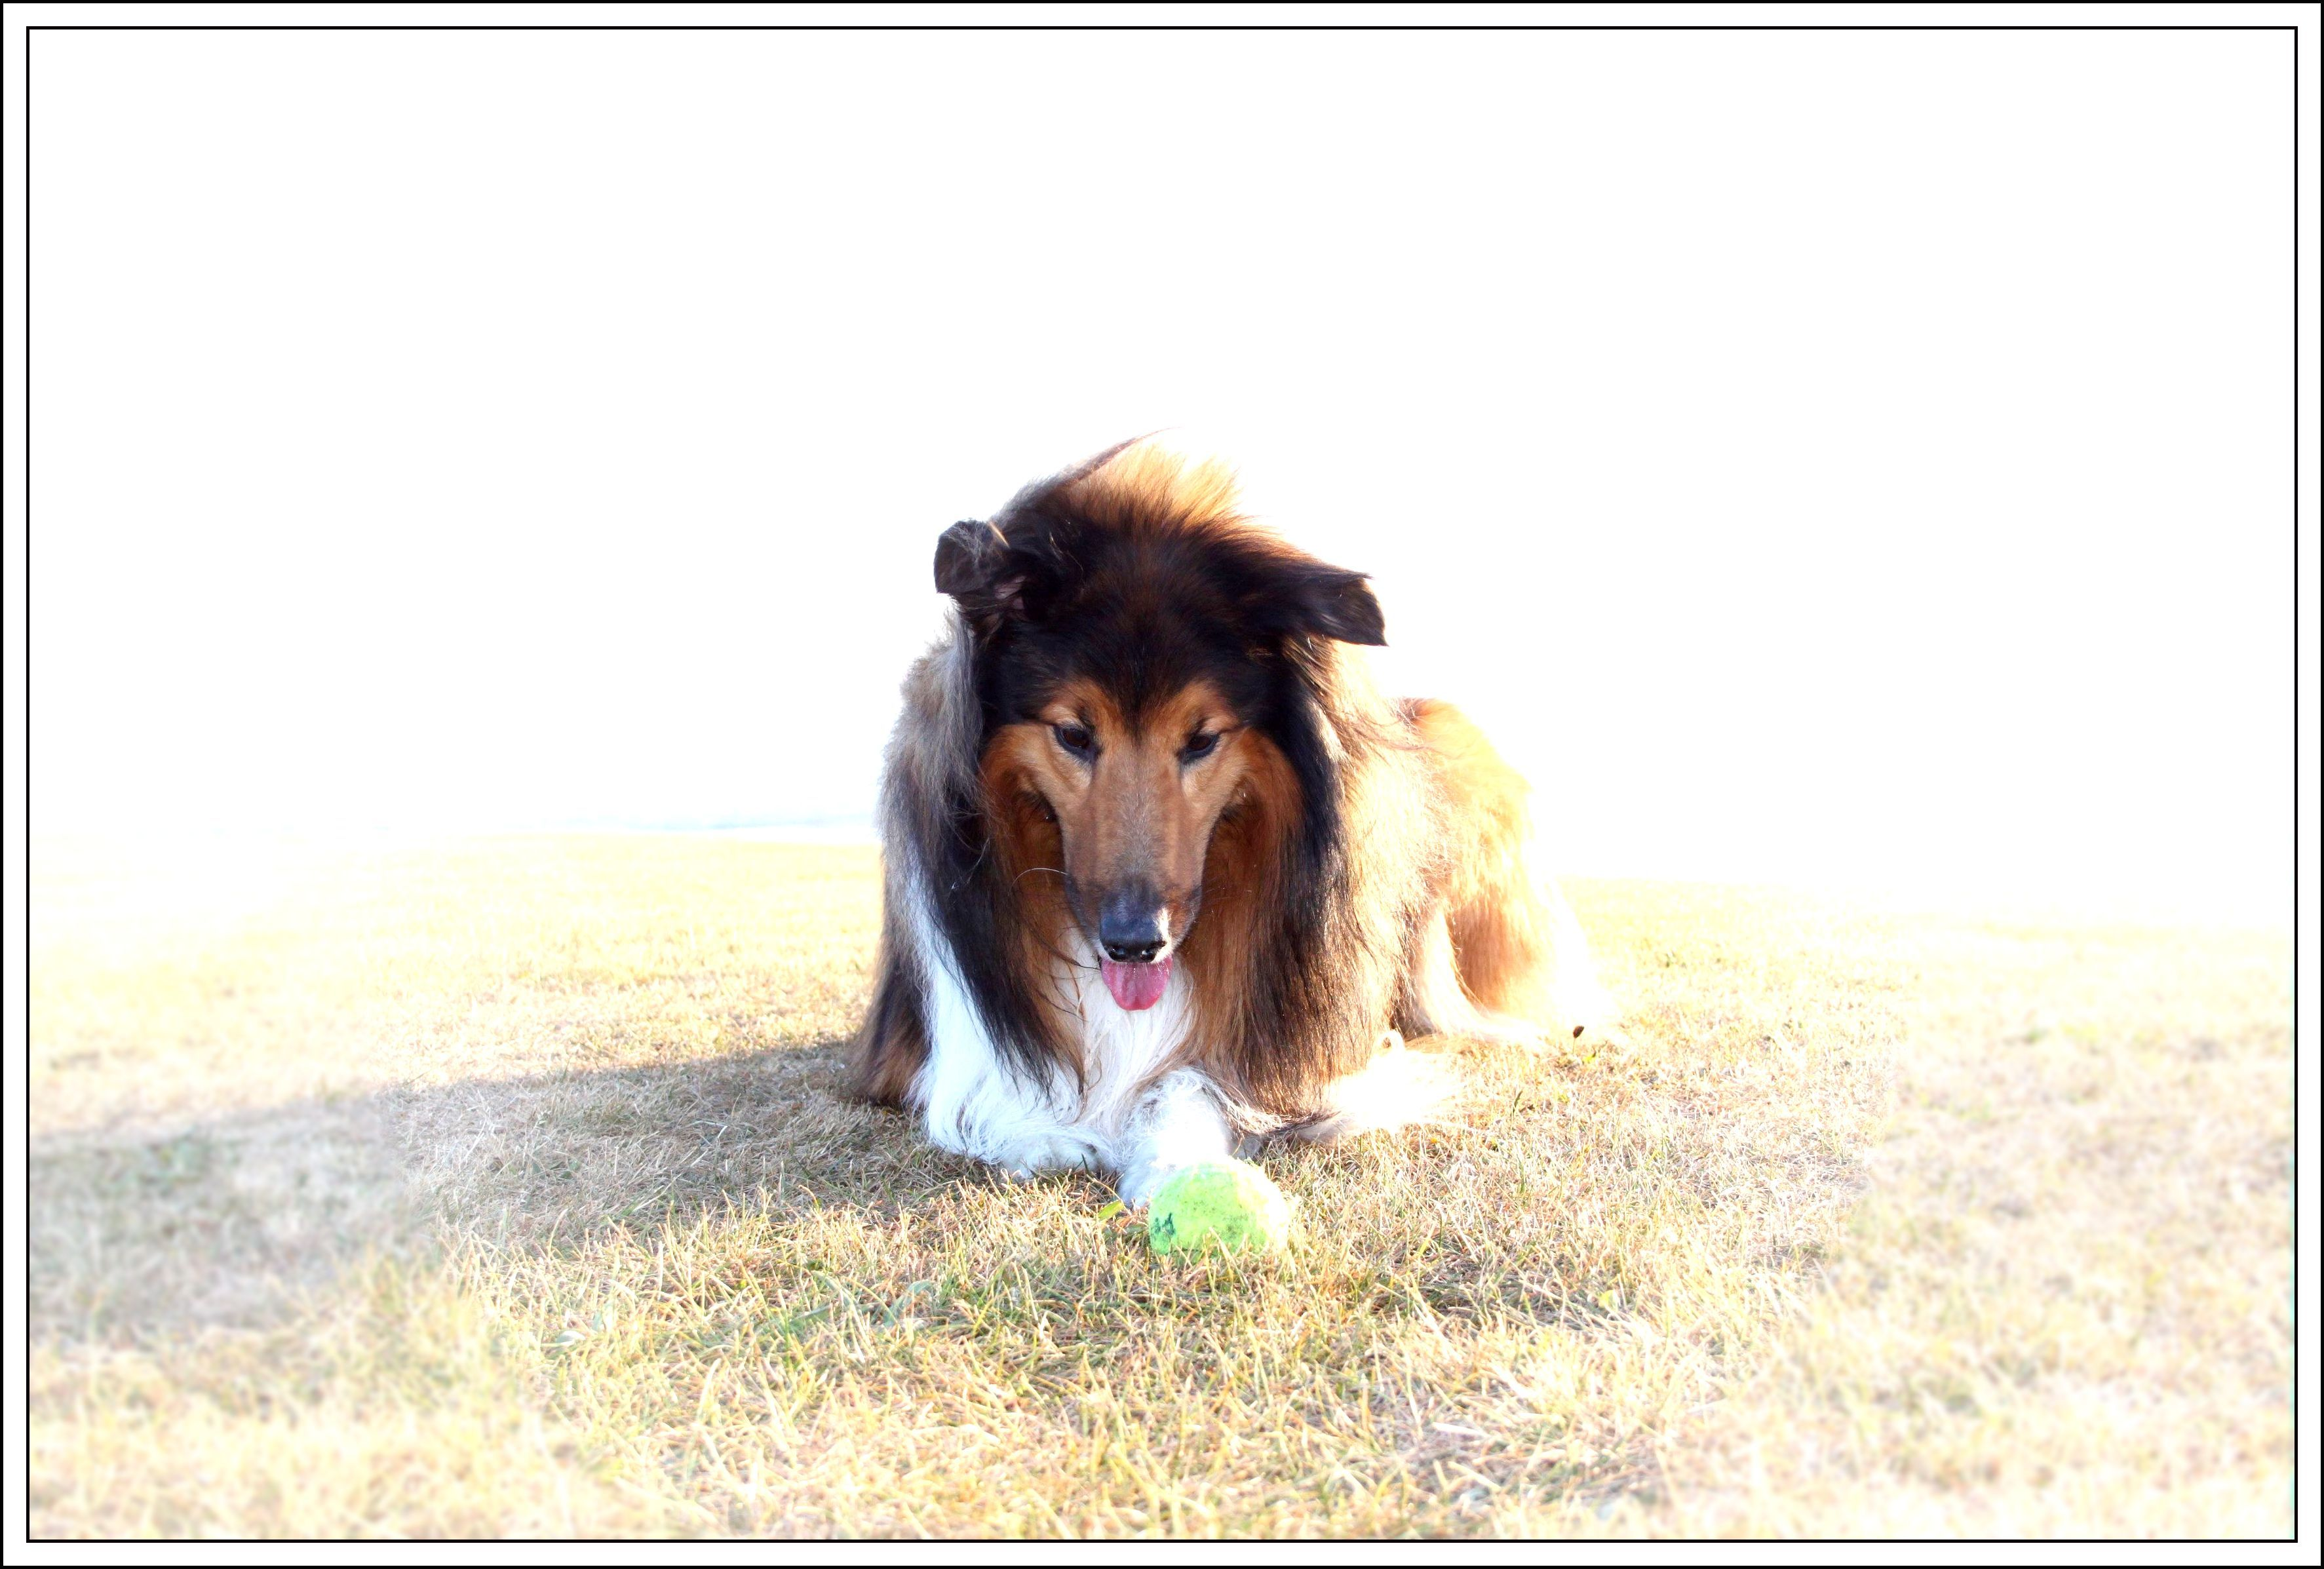 Pin by Tracey Valente on Sammy Rough collie, Collie, Dogs